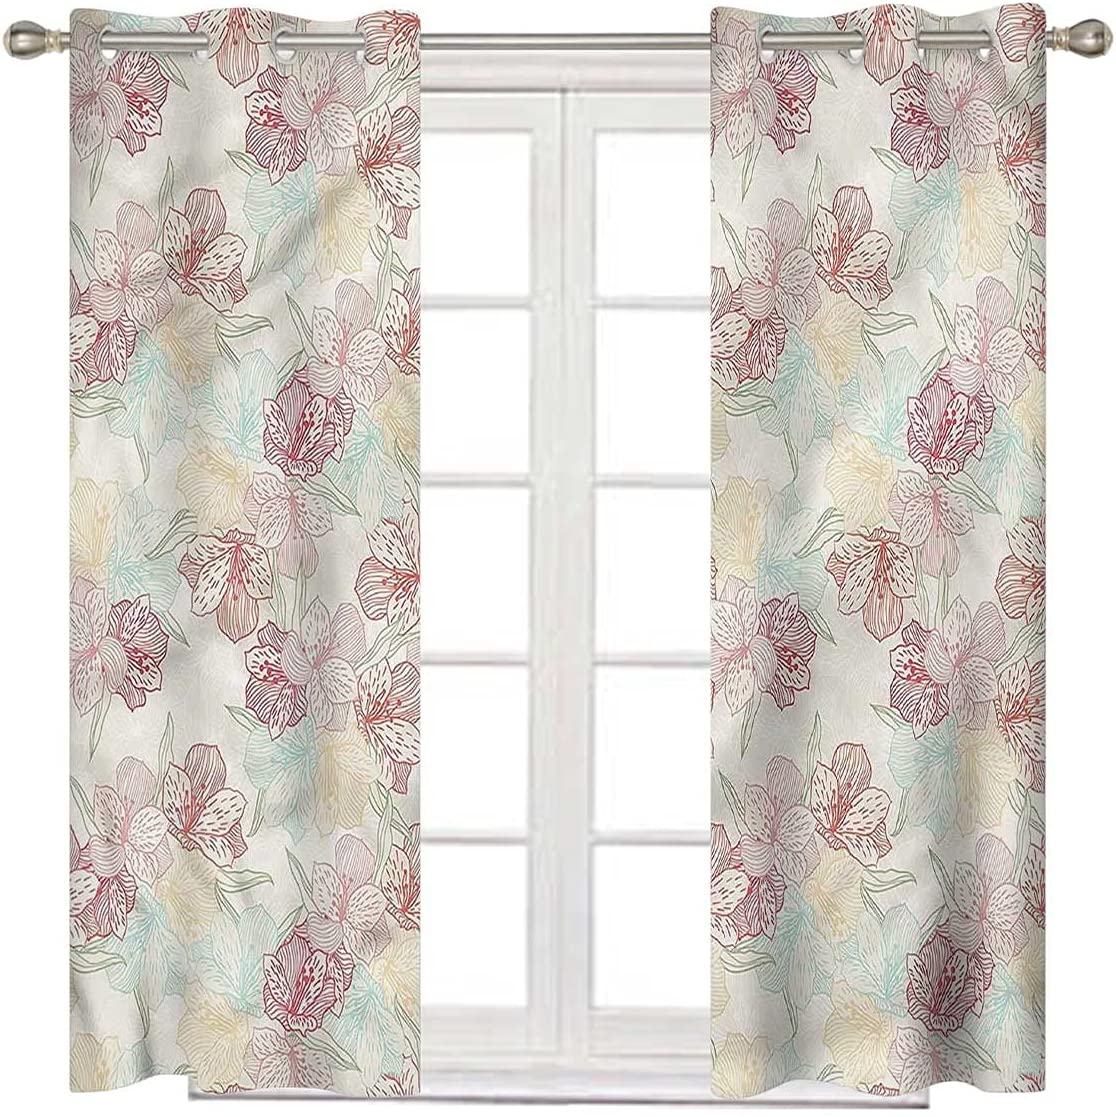 Floral Sliding Sale Door Curtains 108 Inch Soft Max 51% OFF Orchid Colors Long in